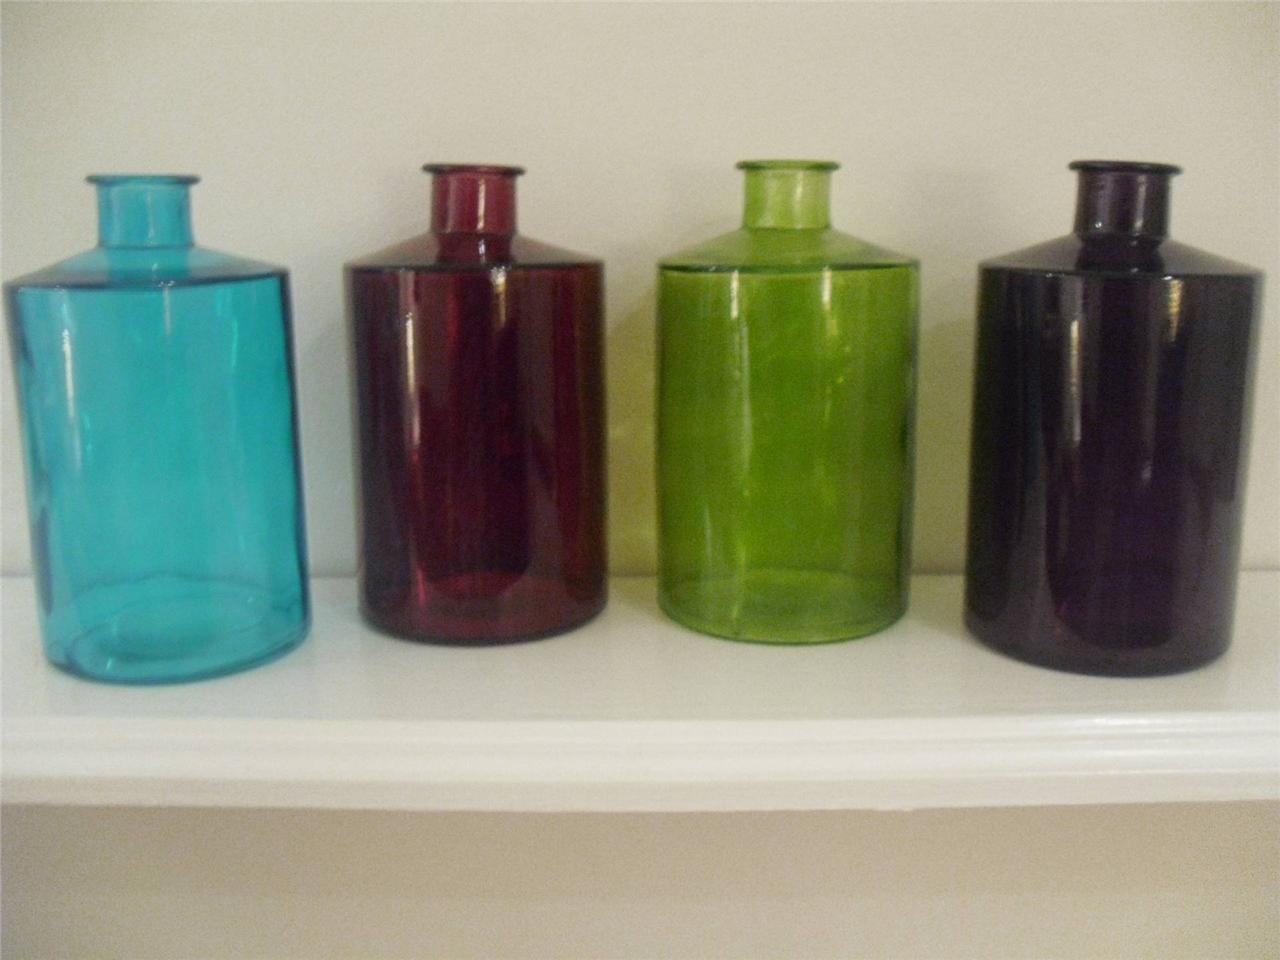 GLASS-RED-PURPLE-TEAL-GREEN-VASE-FLOWER-ORNAMENT-HOME-DECOR-ACCESSORY-CHRISTMAS